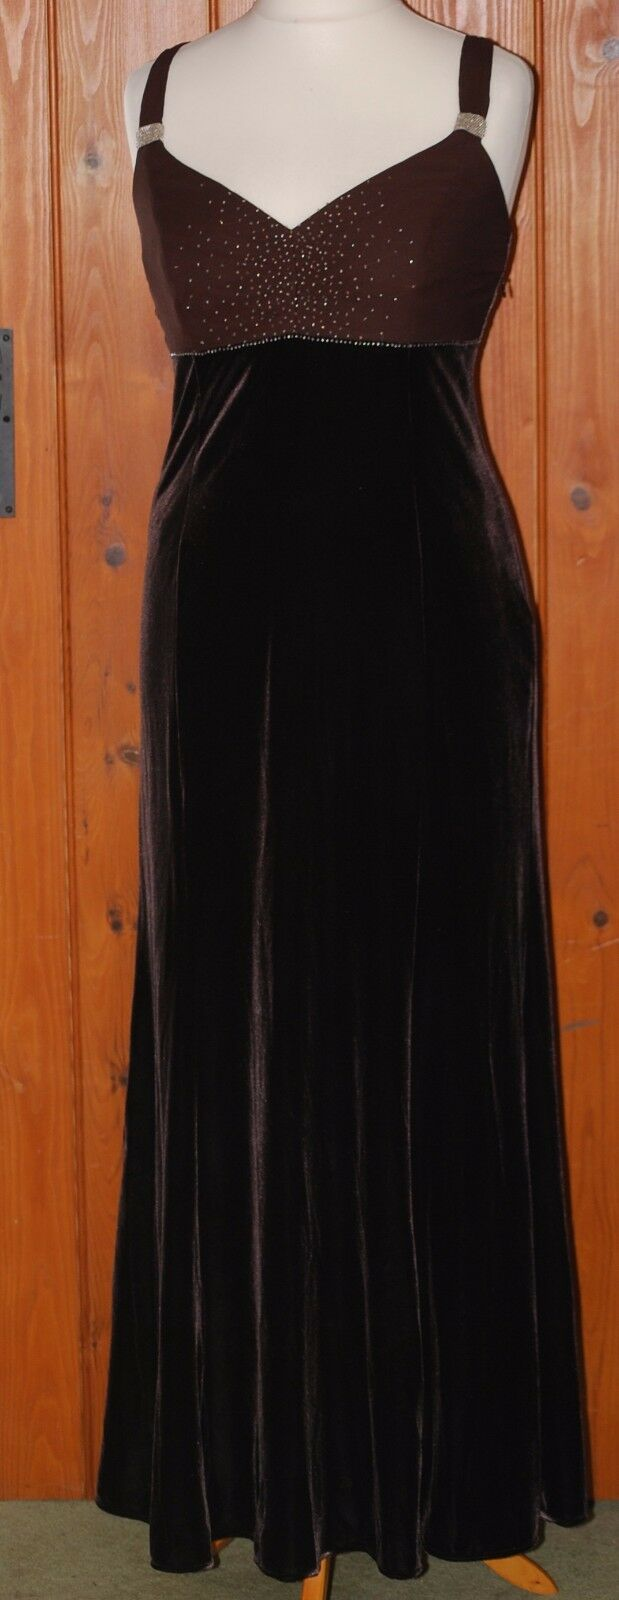 Kaliko, Ladies, Evening, Special Occasion, Prom, Dress, Gown, size 14 (40)